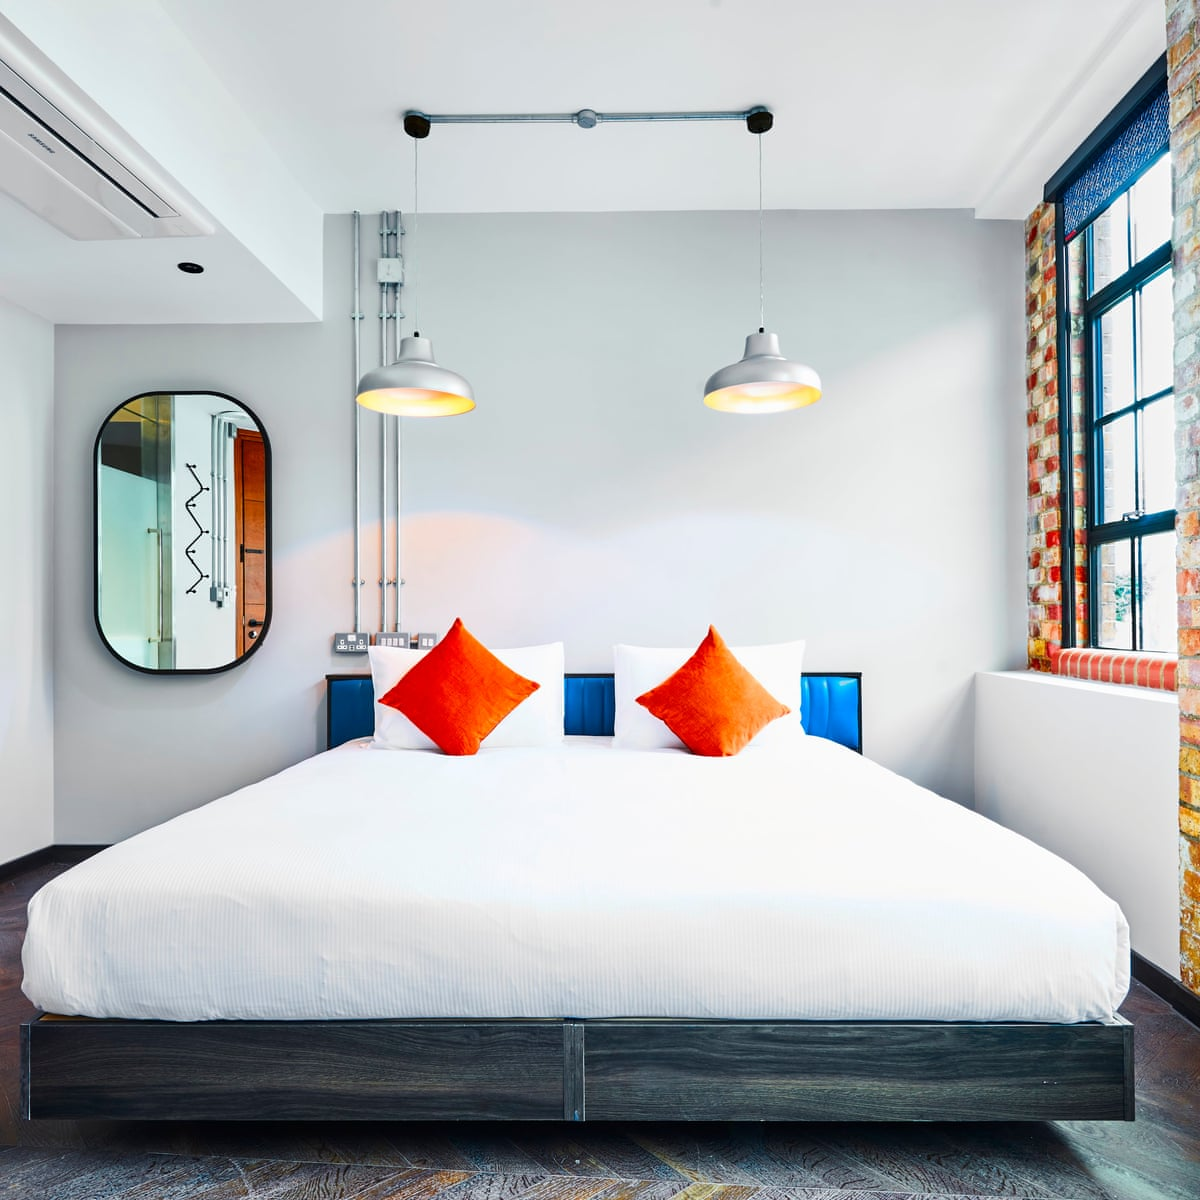 New Road HotelBudget friendly hotel in East London